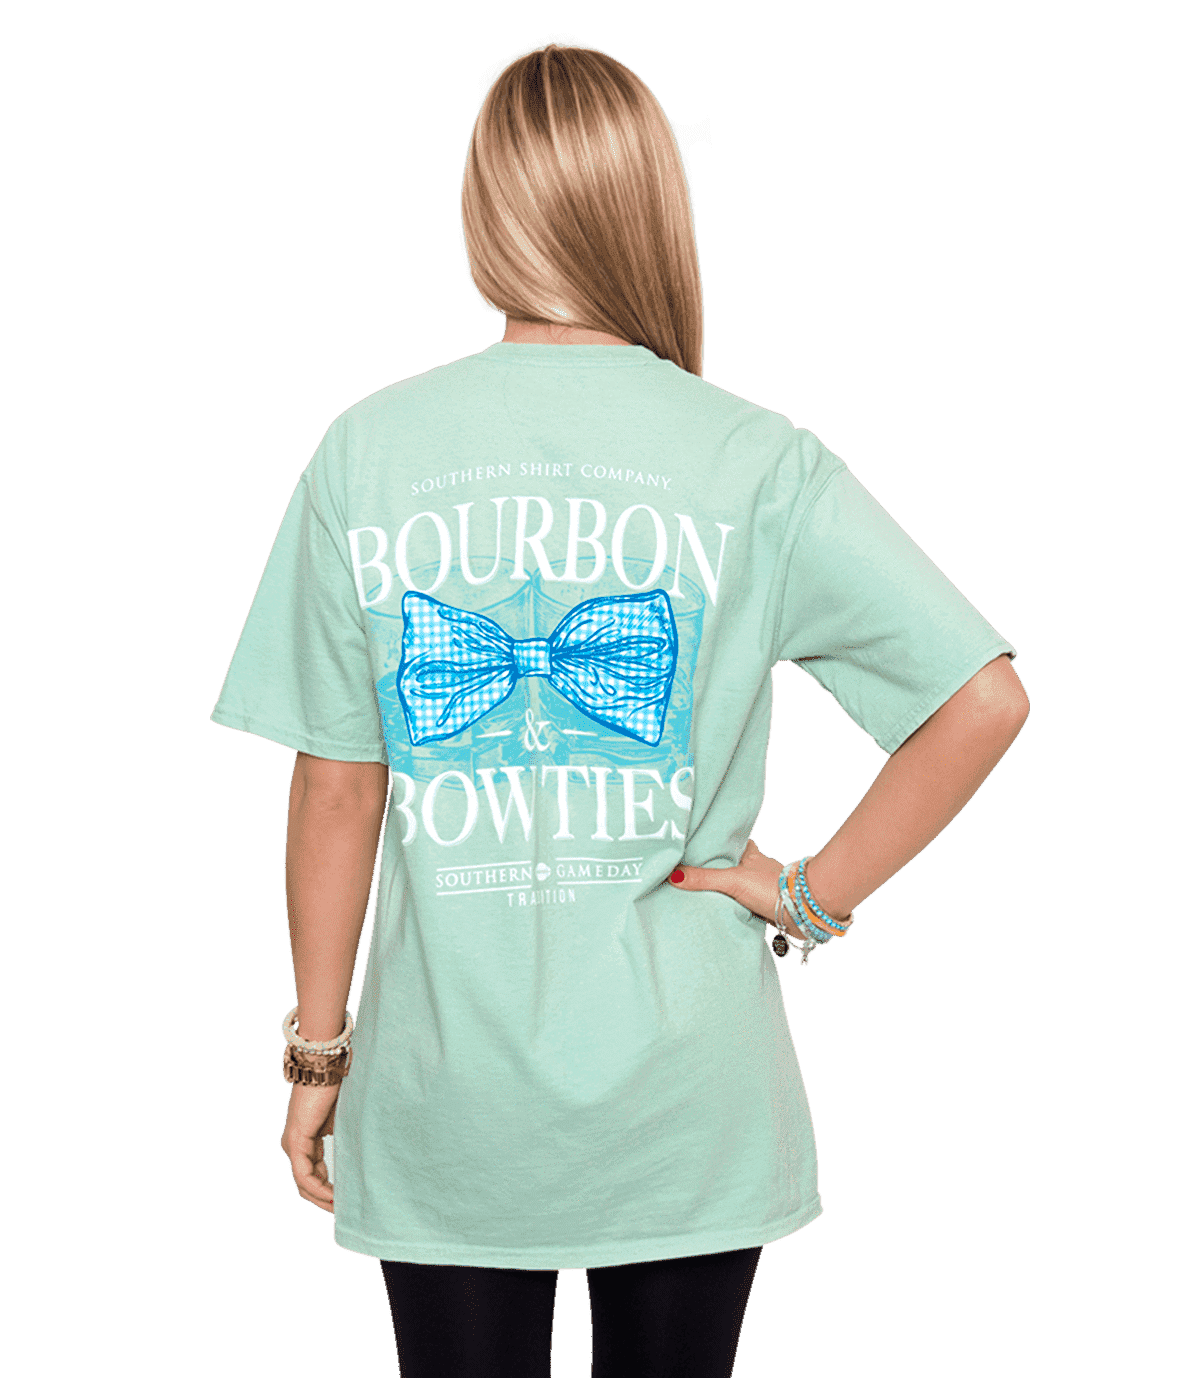 Women's Tee Shirts - Bourbon & Bow Ties Tee In Herbal  Mist By The Southern Shirt Co.